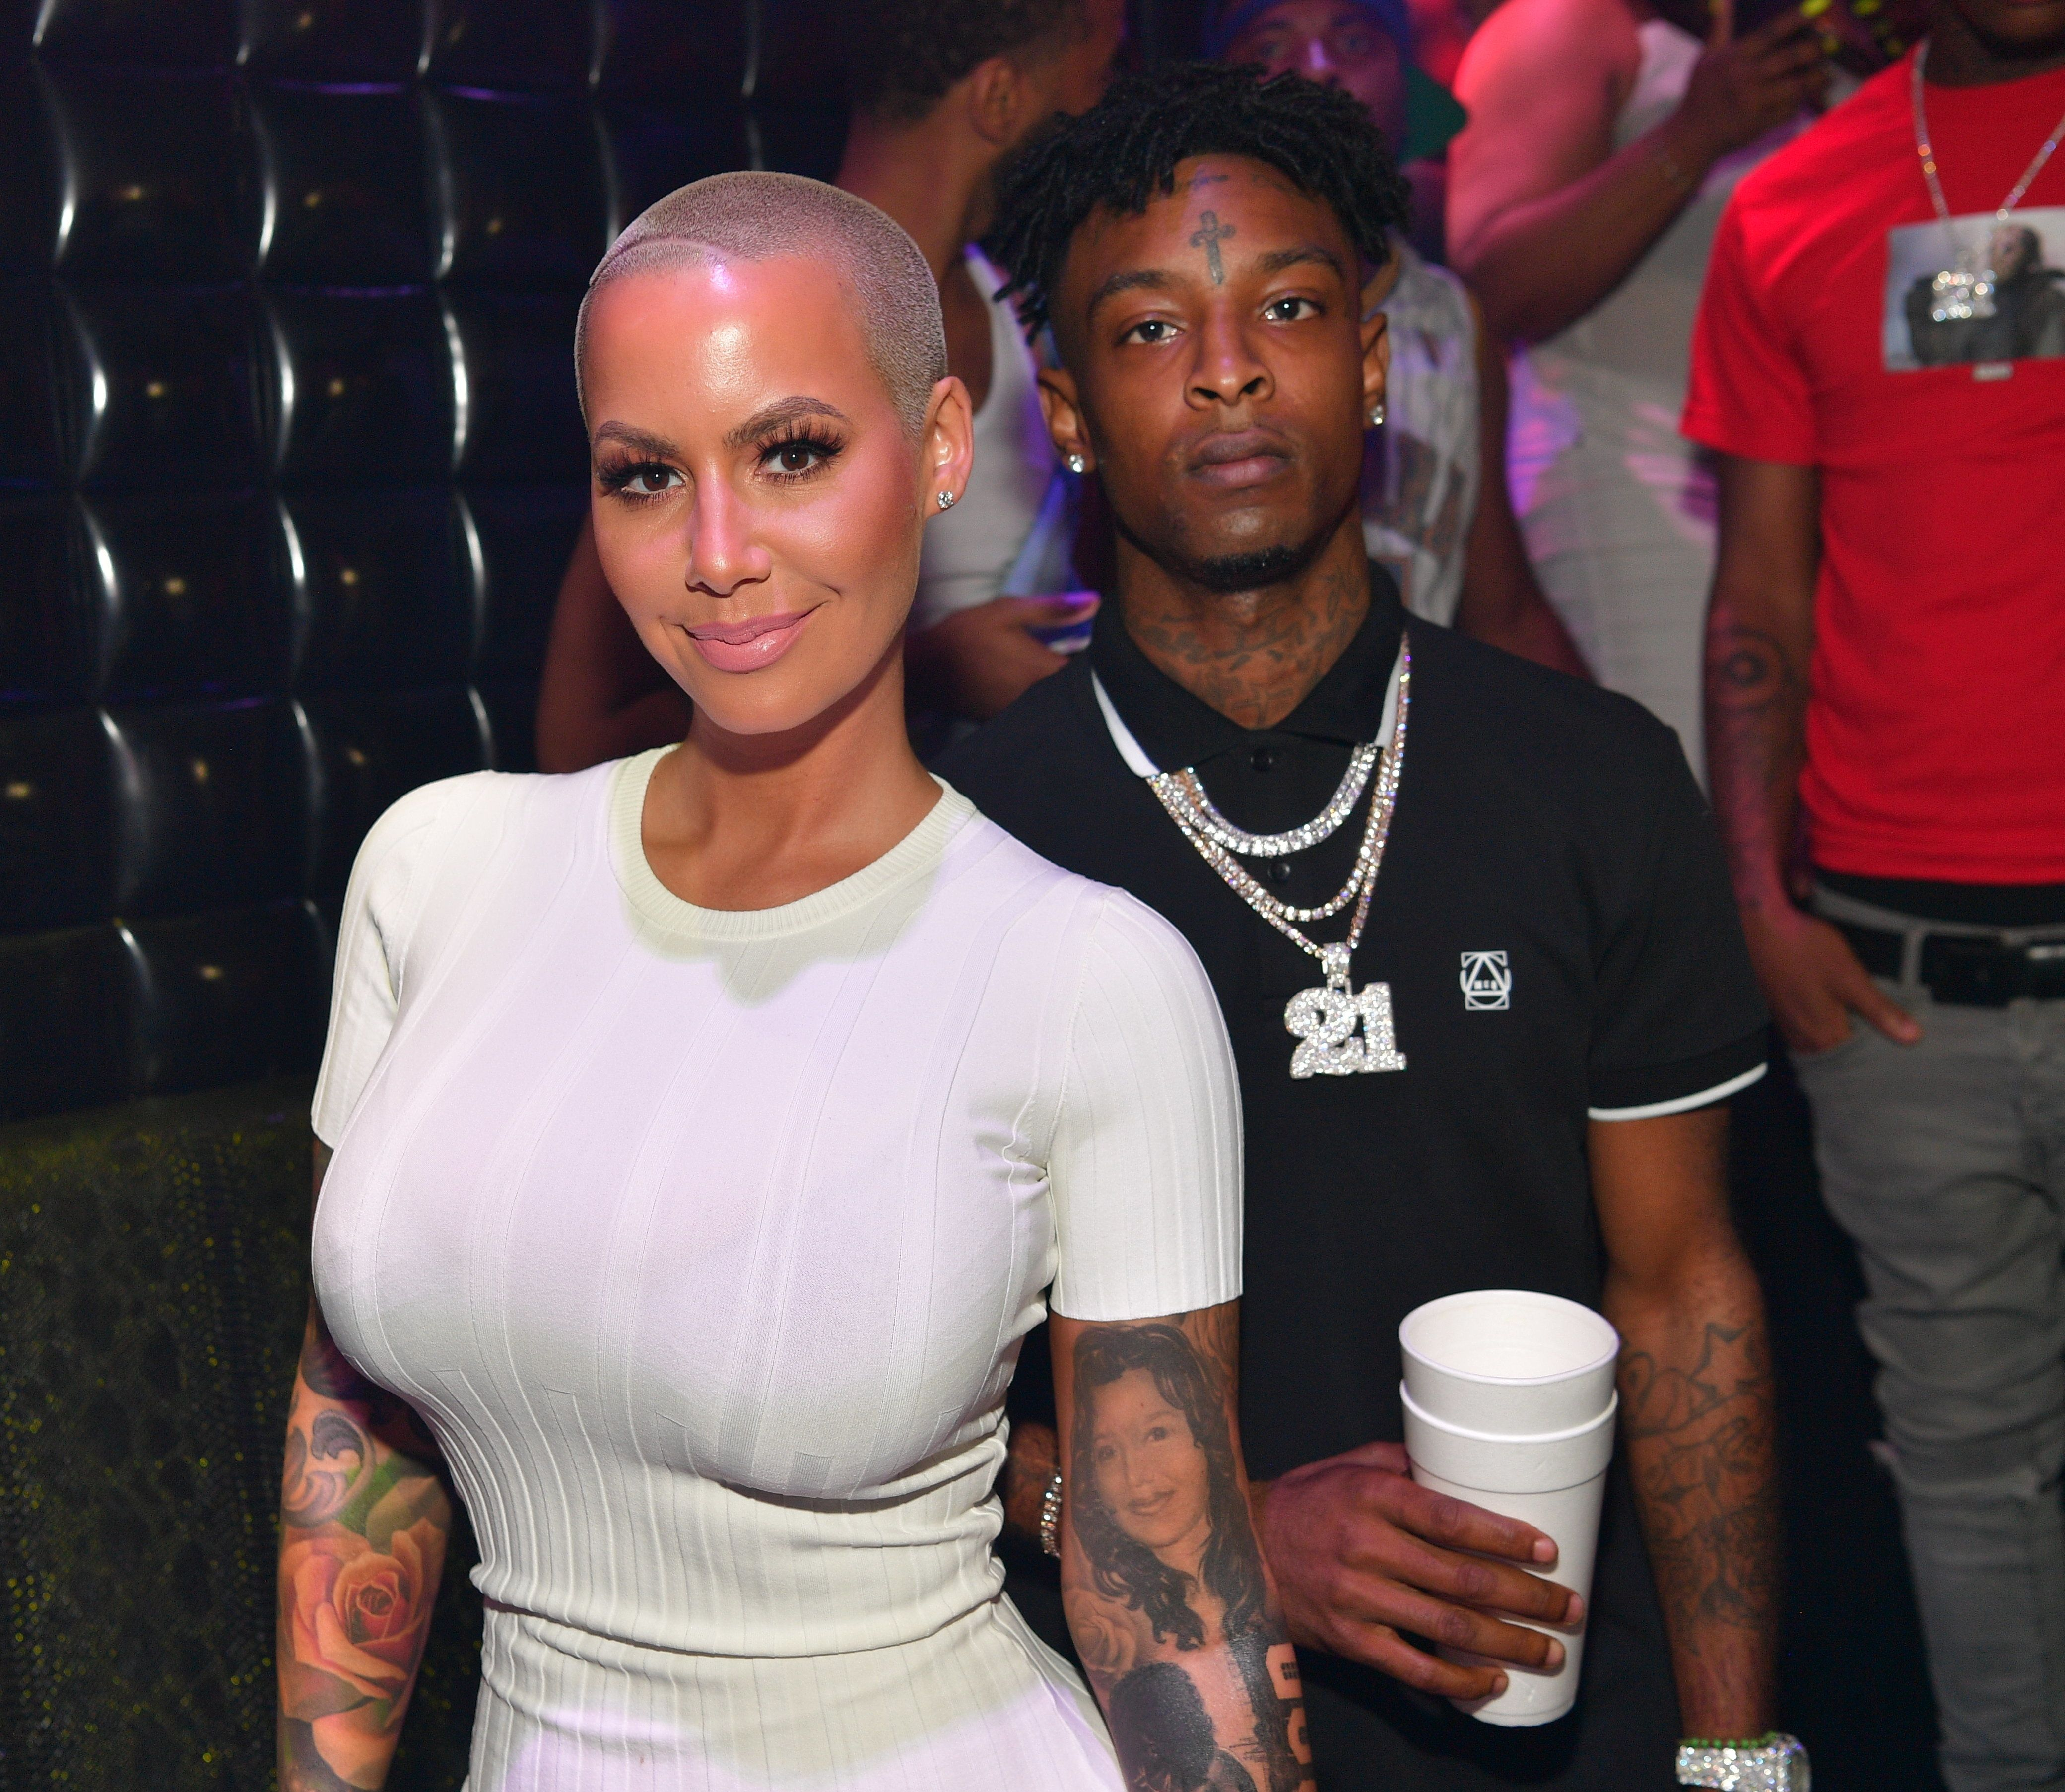 Amber Rose and 21 Savage attend a party hosted by Amber Rose on July 23 in Atlanta, GA.